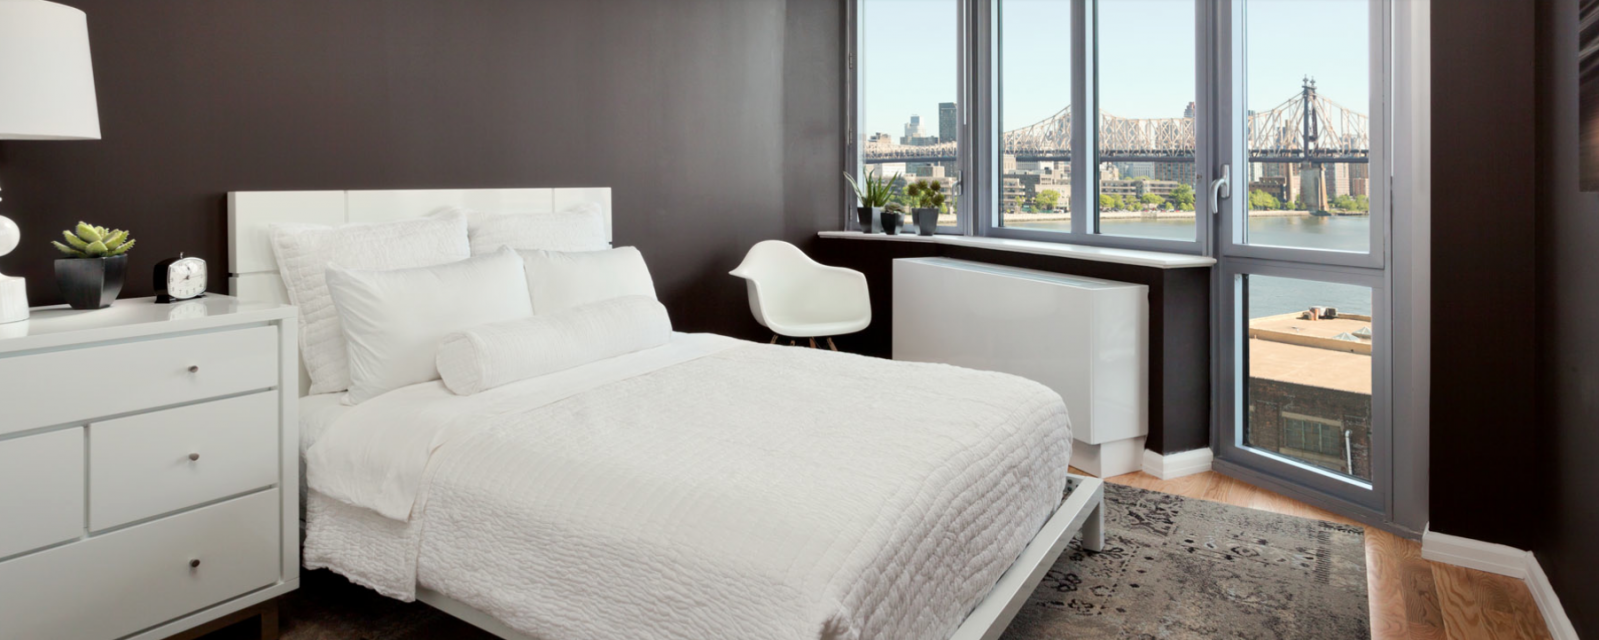 Bedroom - 45-45 Center Boulevard - Long Island City